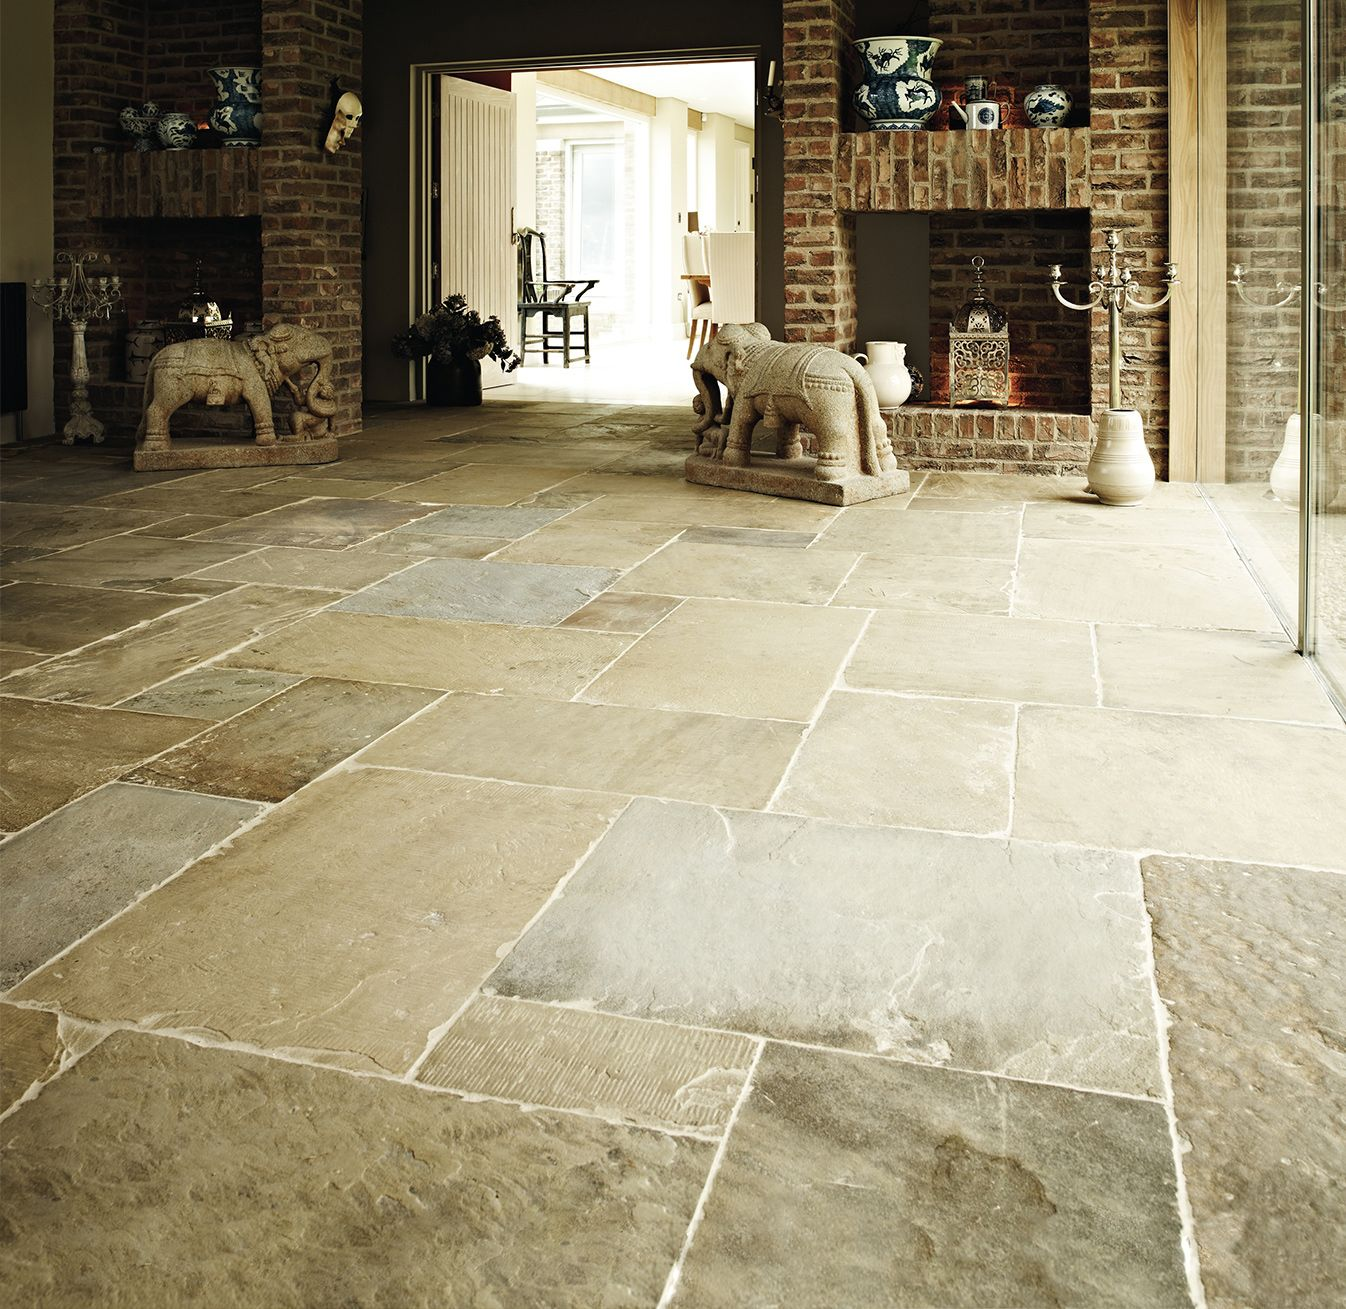 Flagstone Floor Natural Flagstone Tile Flooring Design